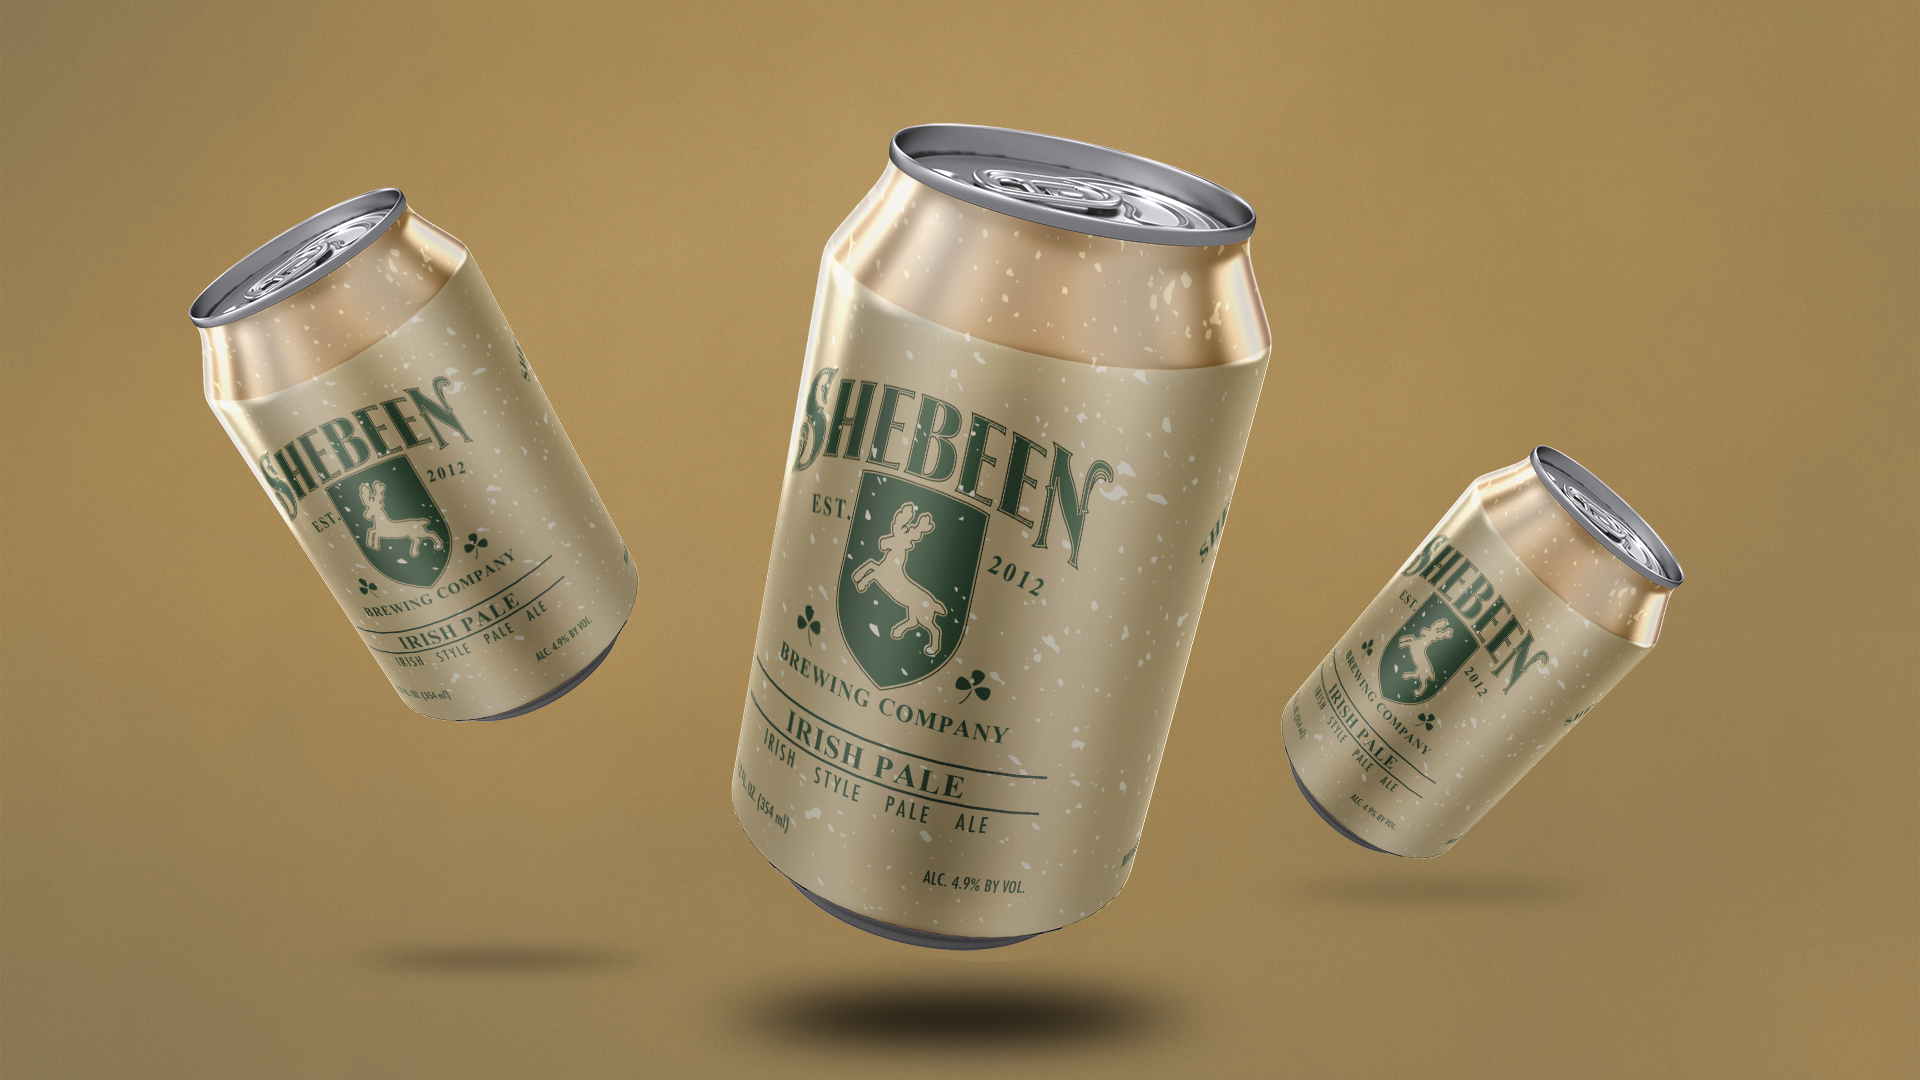 Shebeen-Irish-Pale-Ale-Can-1920x1080-1.jpg